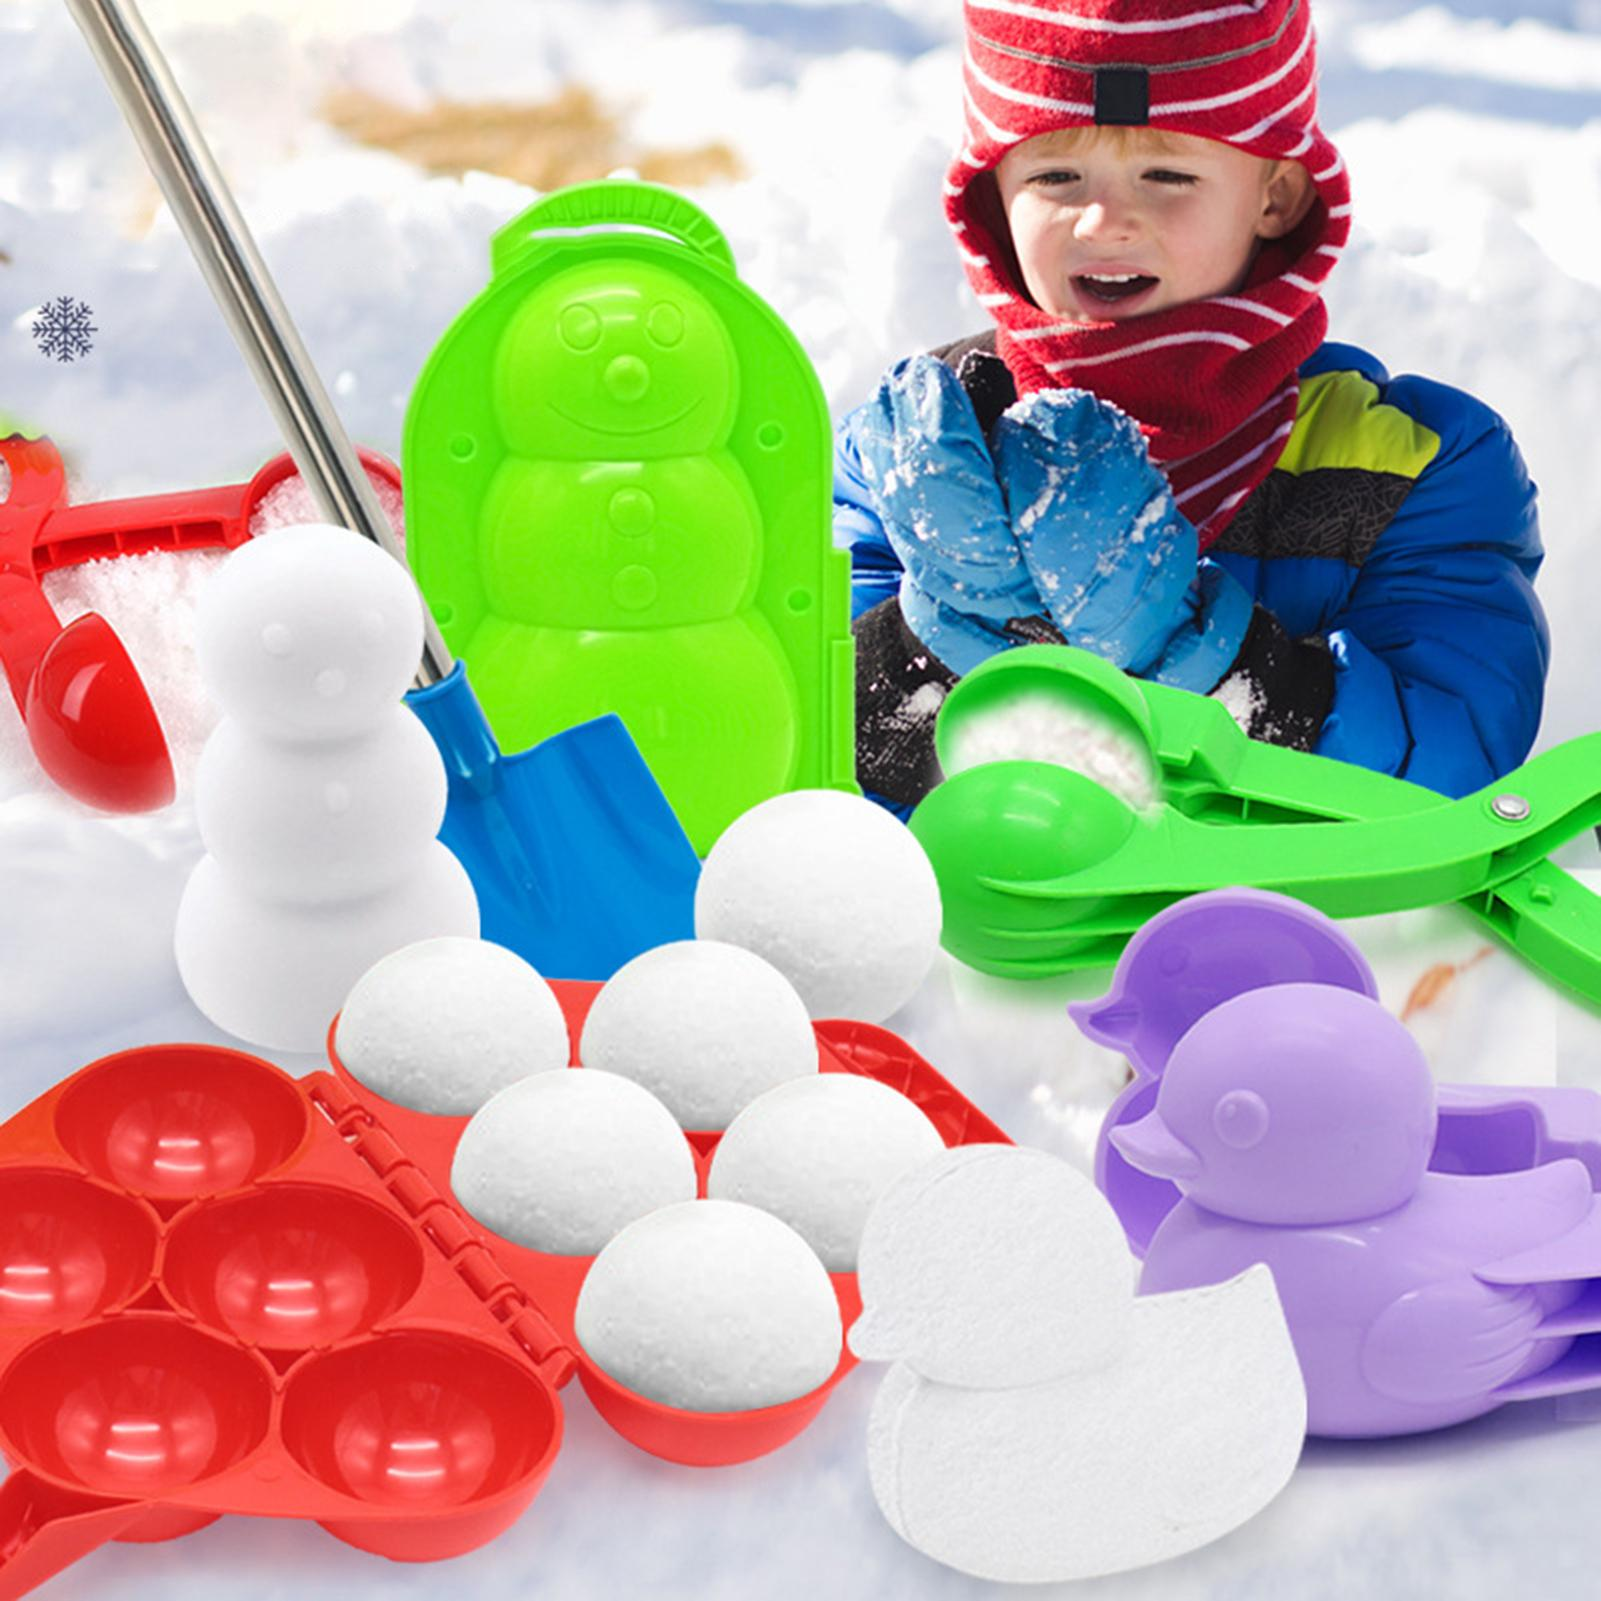 Winter Outdoor Sports Plastic Snowball Clip Maker Mold Tool Children Play Toy Plastic Clamp Kids Toy Snowball Maker Clip Plastic